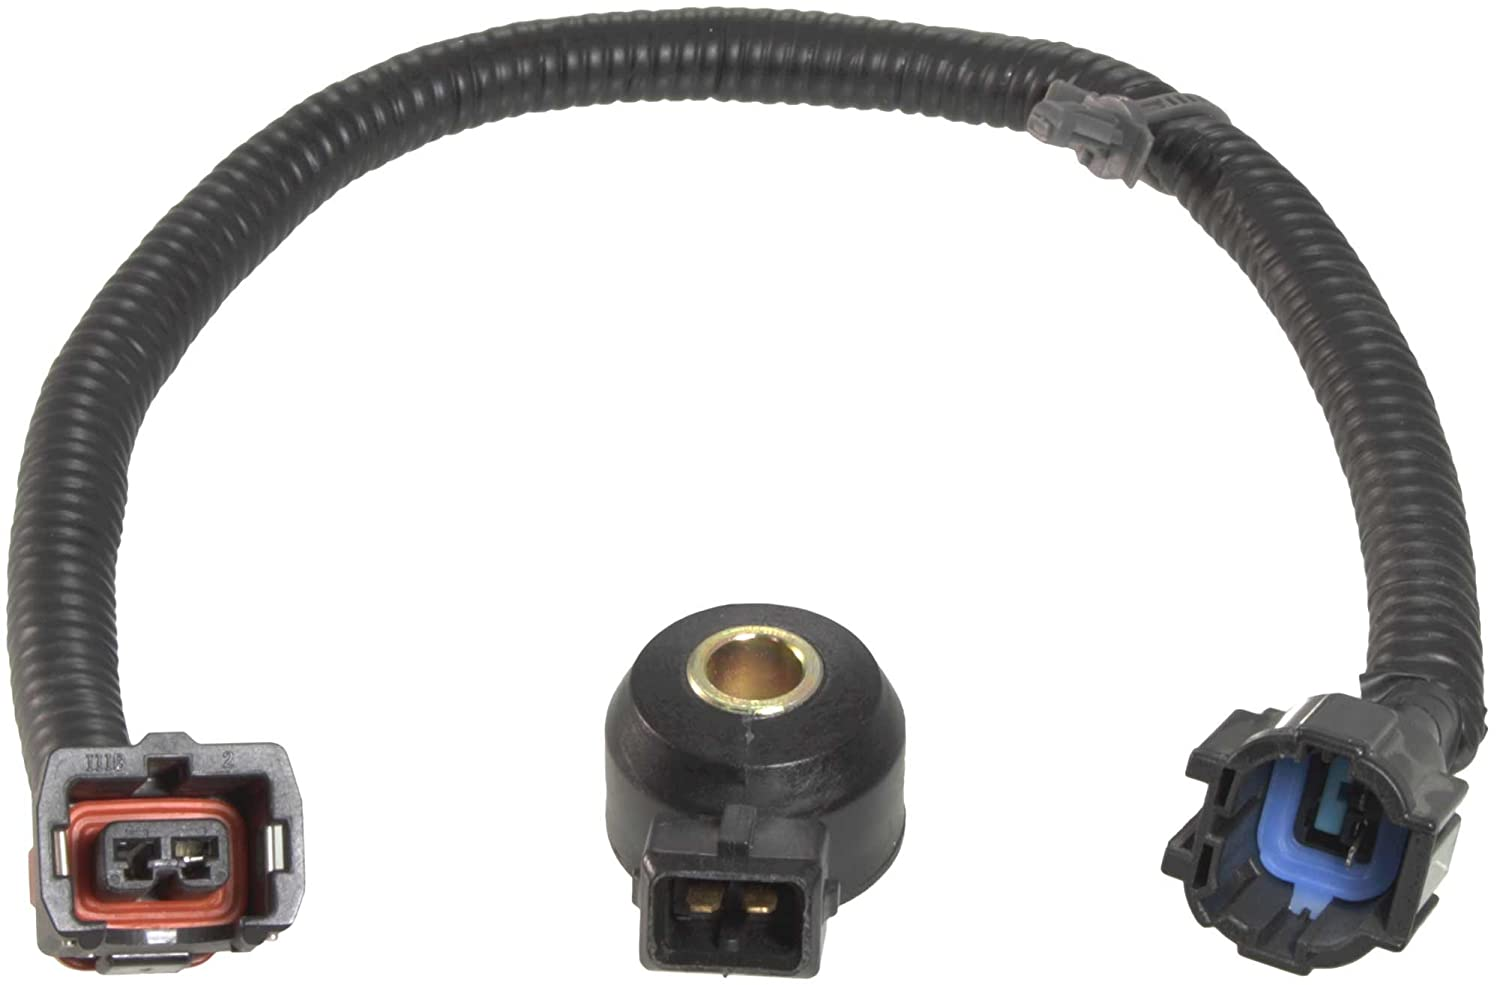 Apdty 028252 Knock Sensor With New Wiring Harness 2004 Infiniti I 35 Diagram Pigtail Connector Fits Select 1990 2002 Nissan Or Mode Ls Listed In The Compatibility